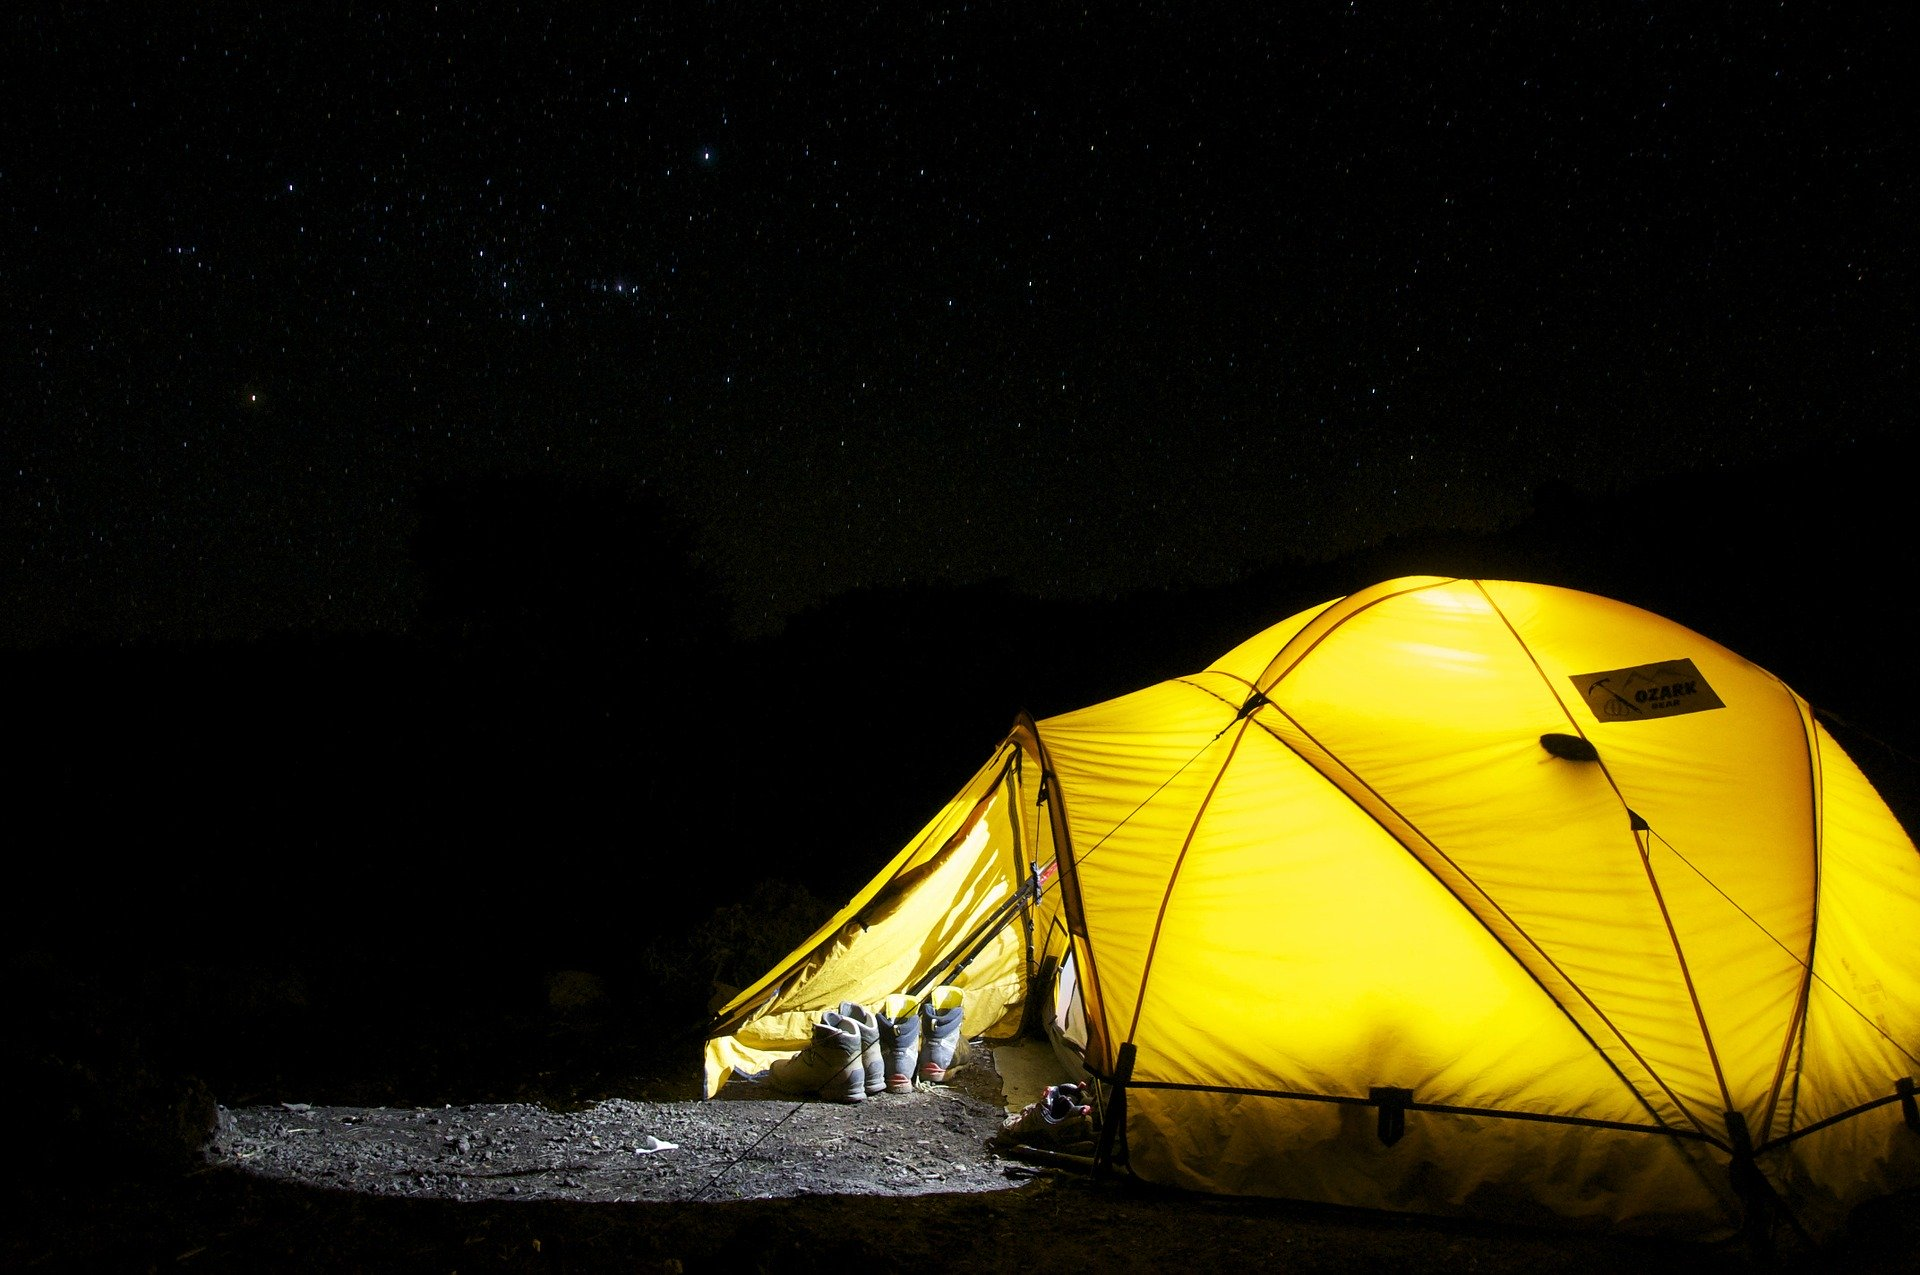 Protect Against Adverse Weather Conditions When Camping